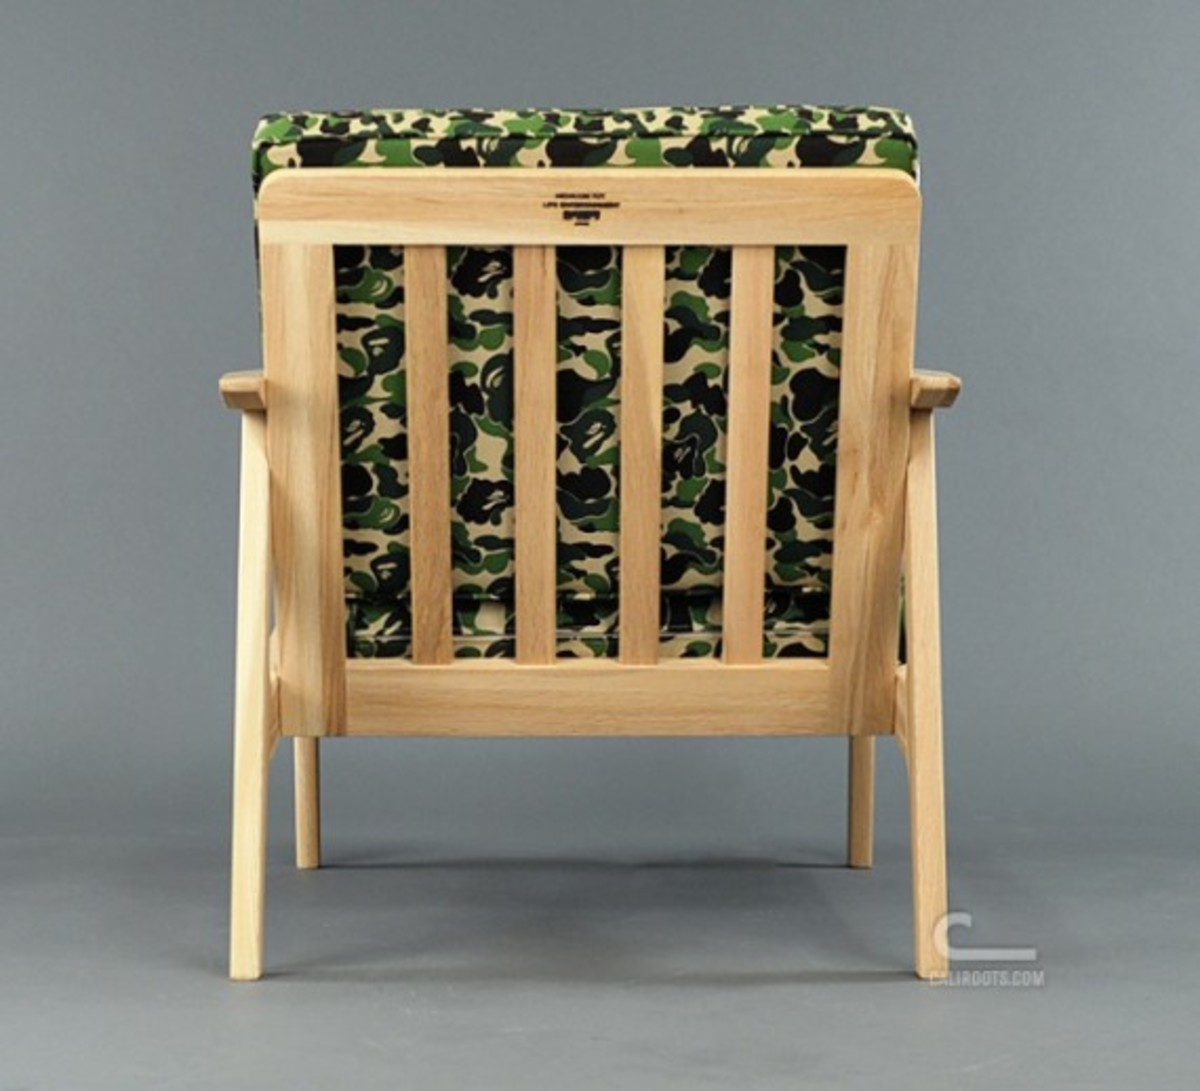 a-bathing-ape-medicom-toy-karimoku-bape-camo-furniture-15